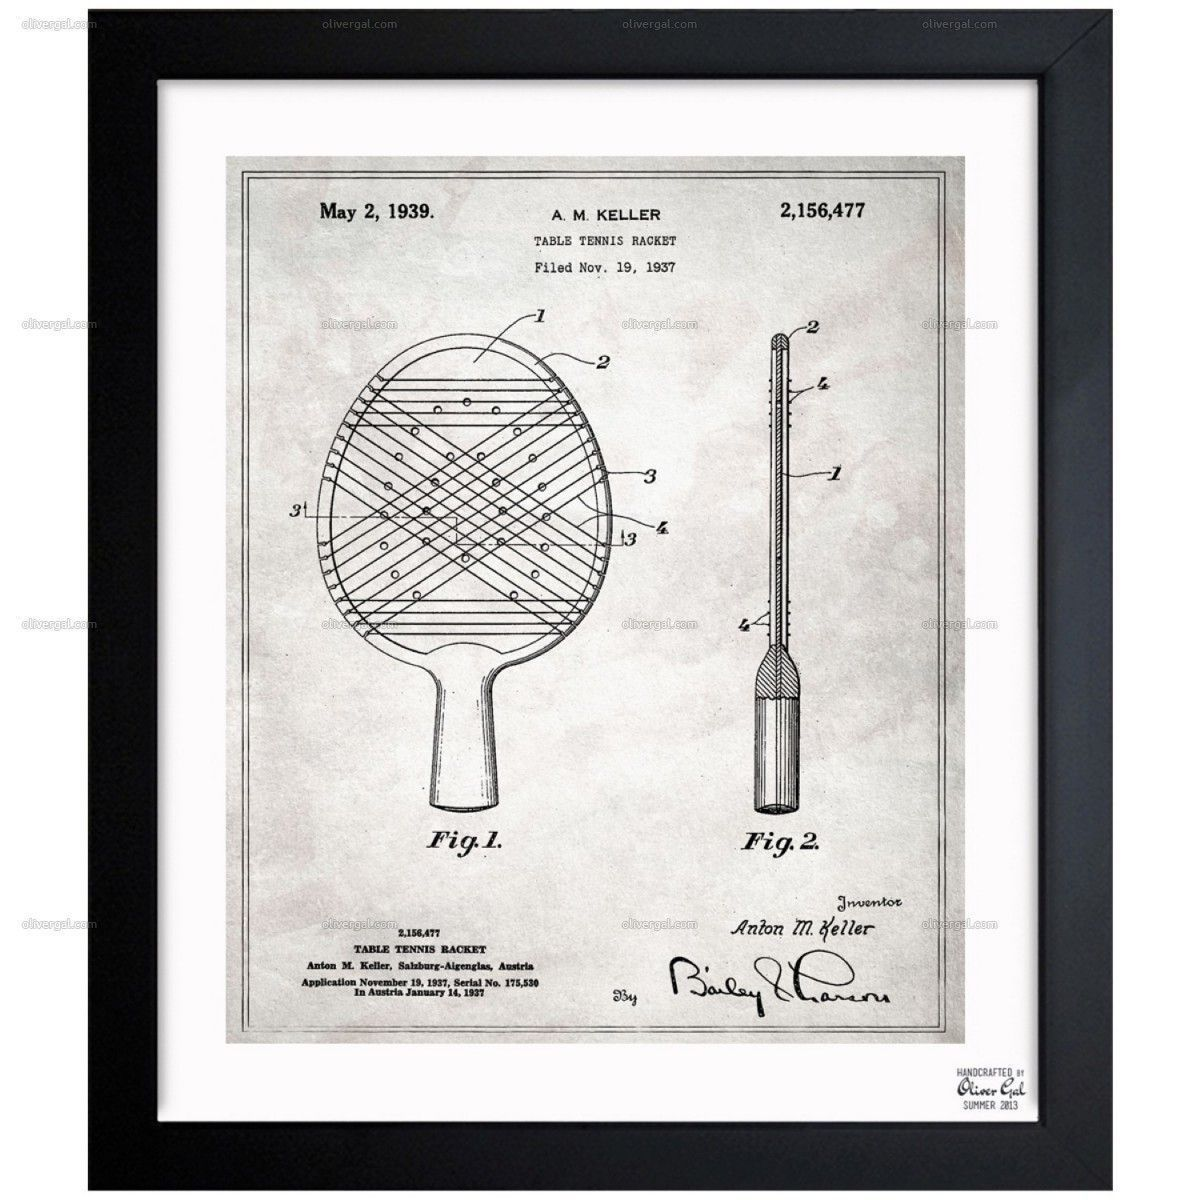 Table Tennis Racket 1939 Exclusive Blueprints Inspired By Real Vintage Patent Drawings And Illustrations H Patent Art Prints Table Tennis Racket Table Tennis